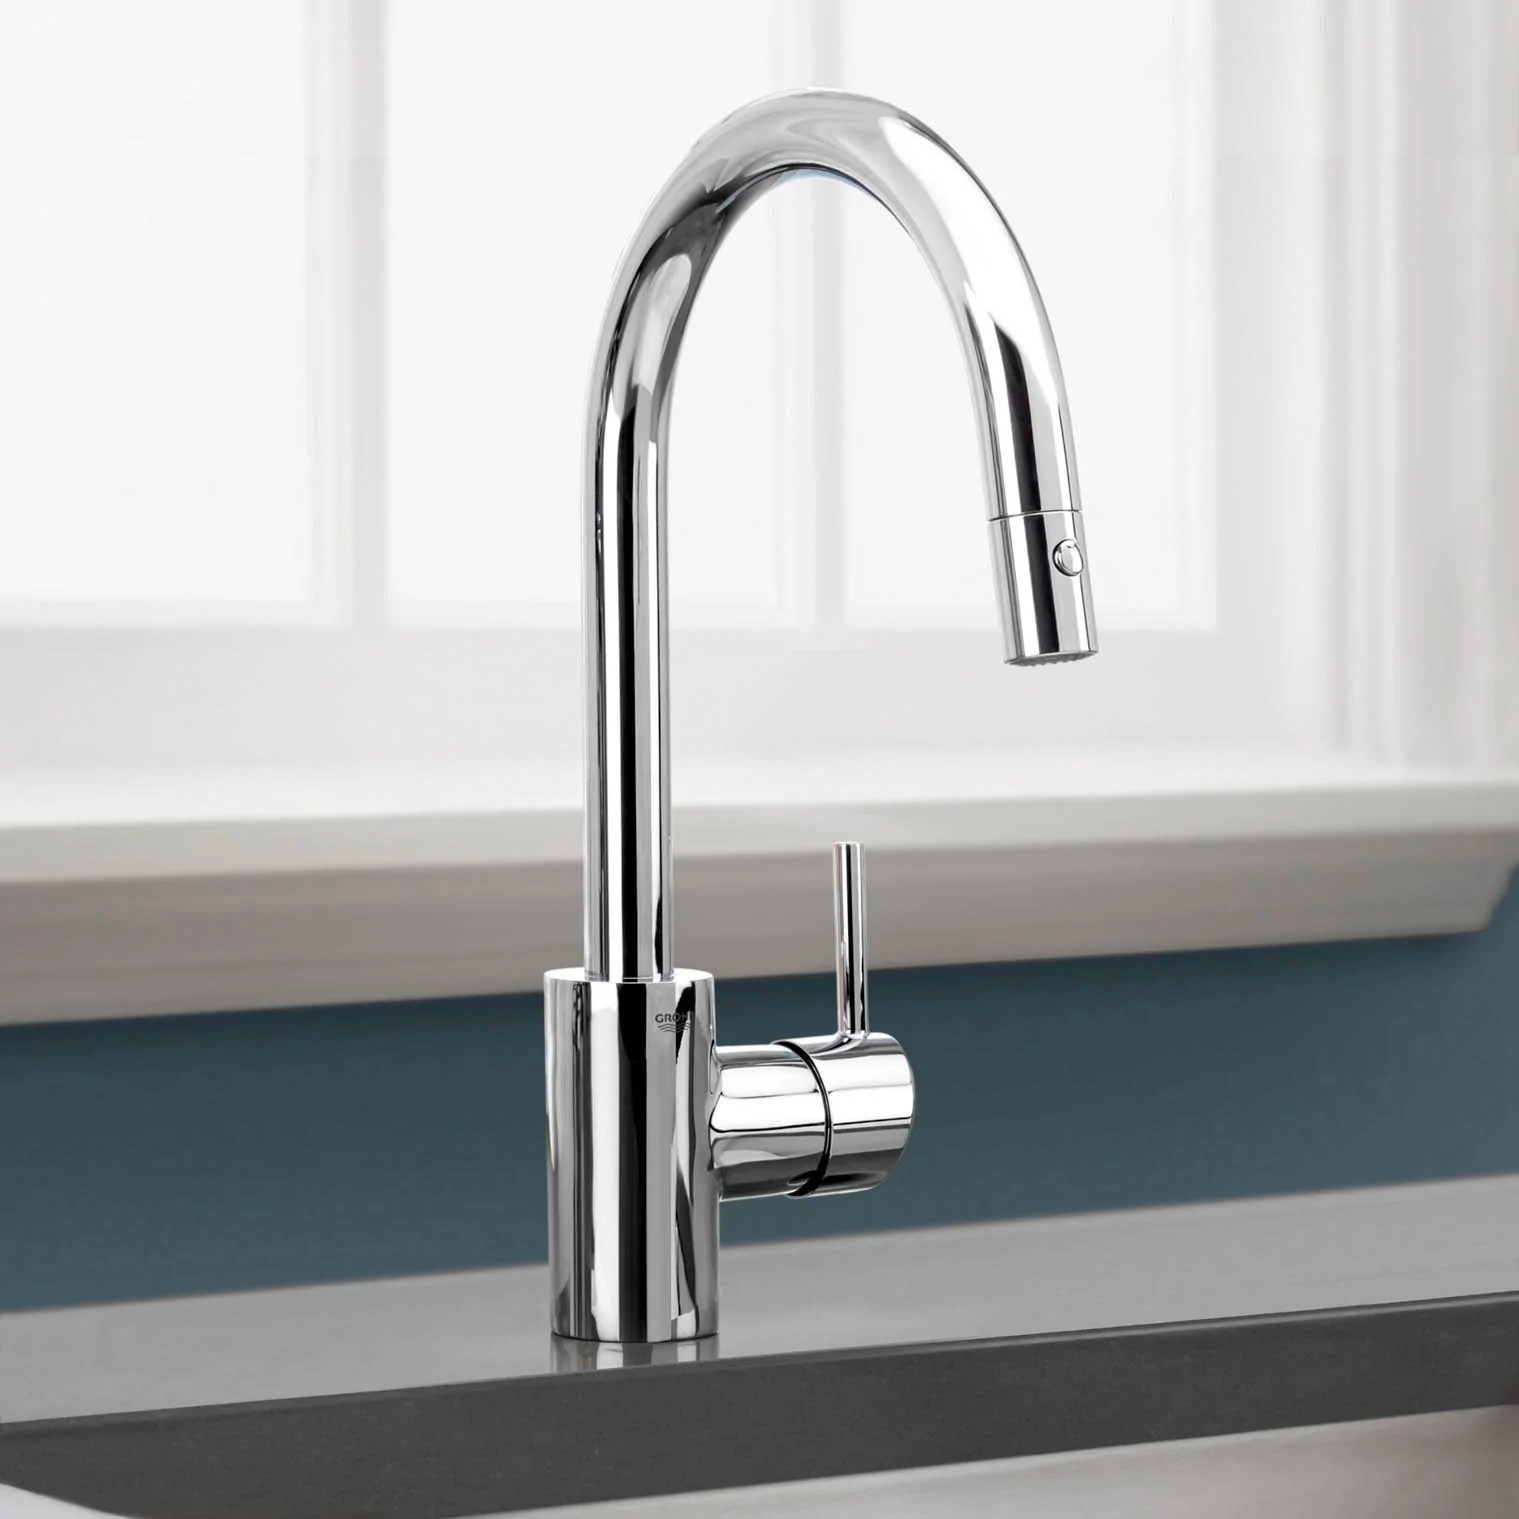 grohe concetto kitchen faucet parts hansgrohe kitchen faucets Grohe Pull Down Spray Kitchen Faucet Mega Supply